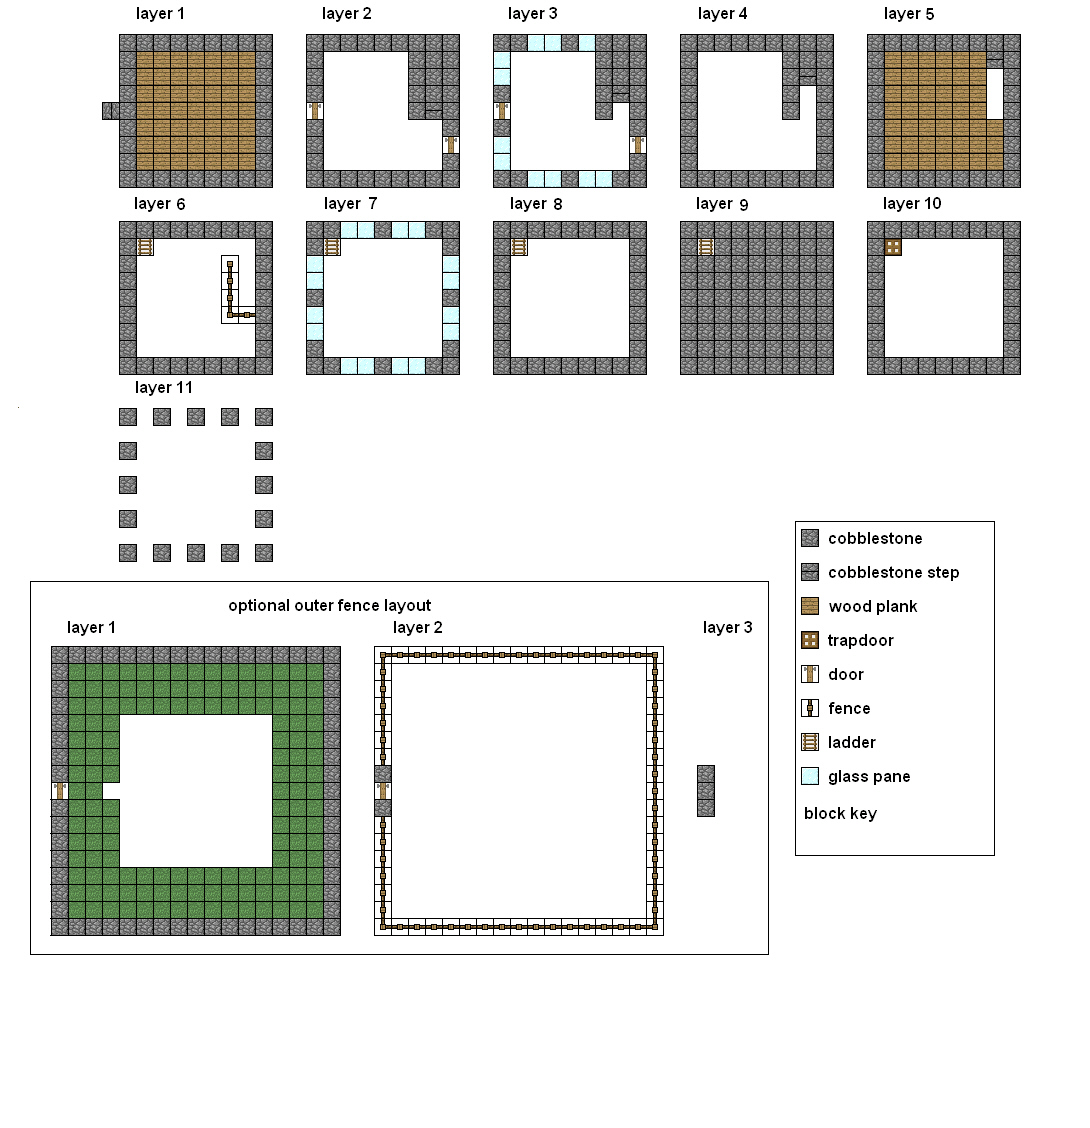 Minecraft Floorplans Medium House by ColtCoyote on DeviantArtMinecraft Floorplans Medium House by ColtCoyote Minecraft Floorplans Medium House by ColtCoyote